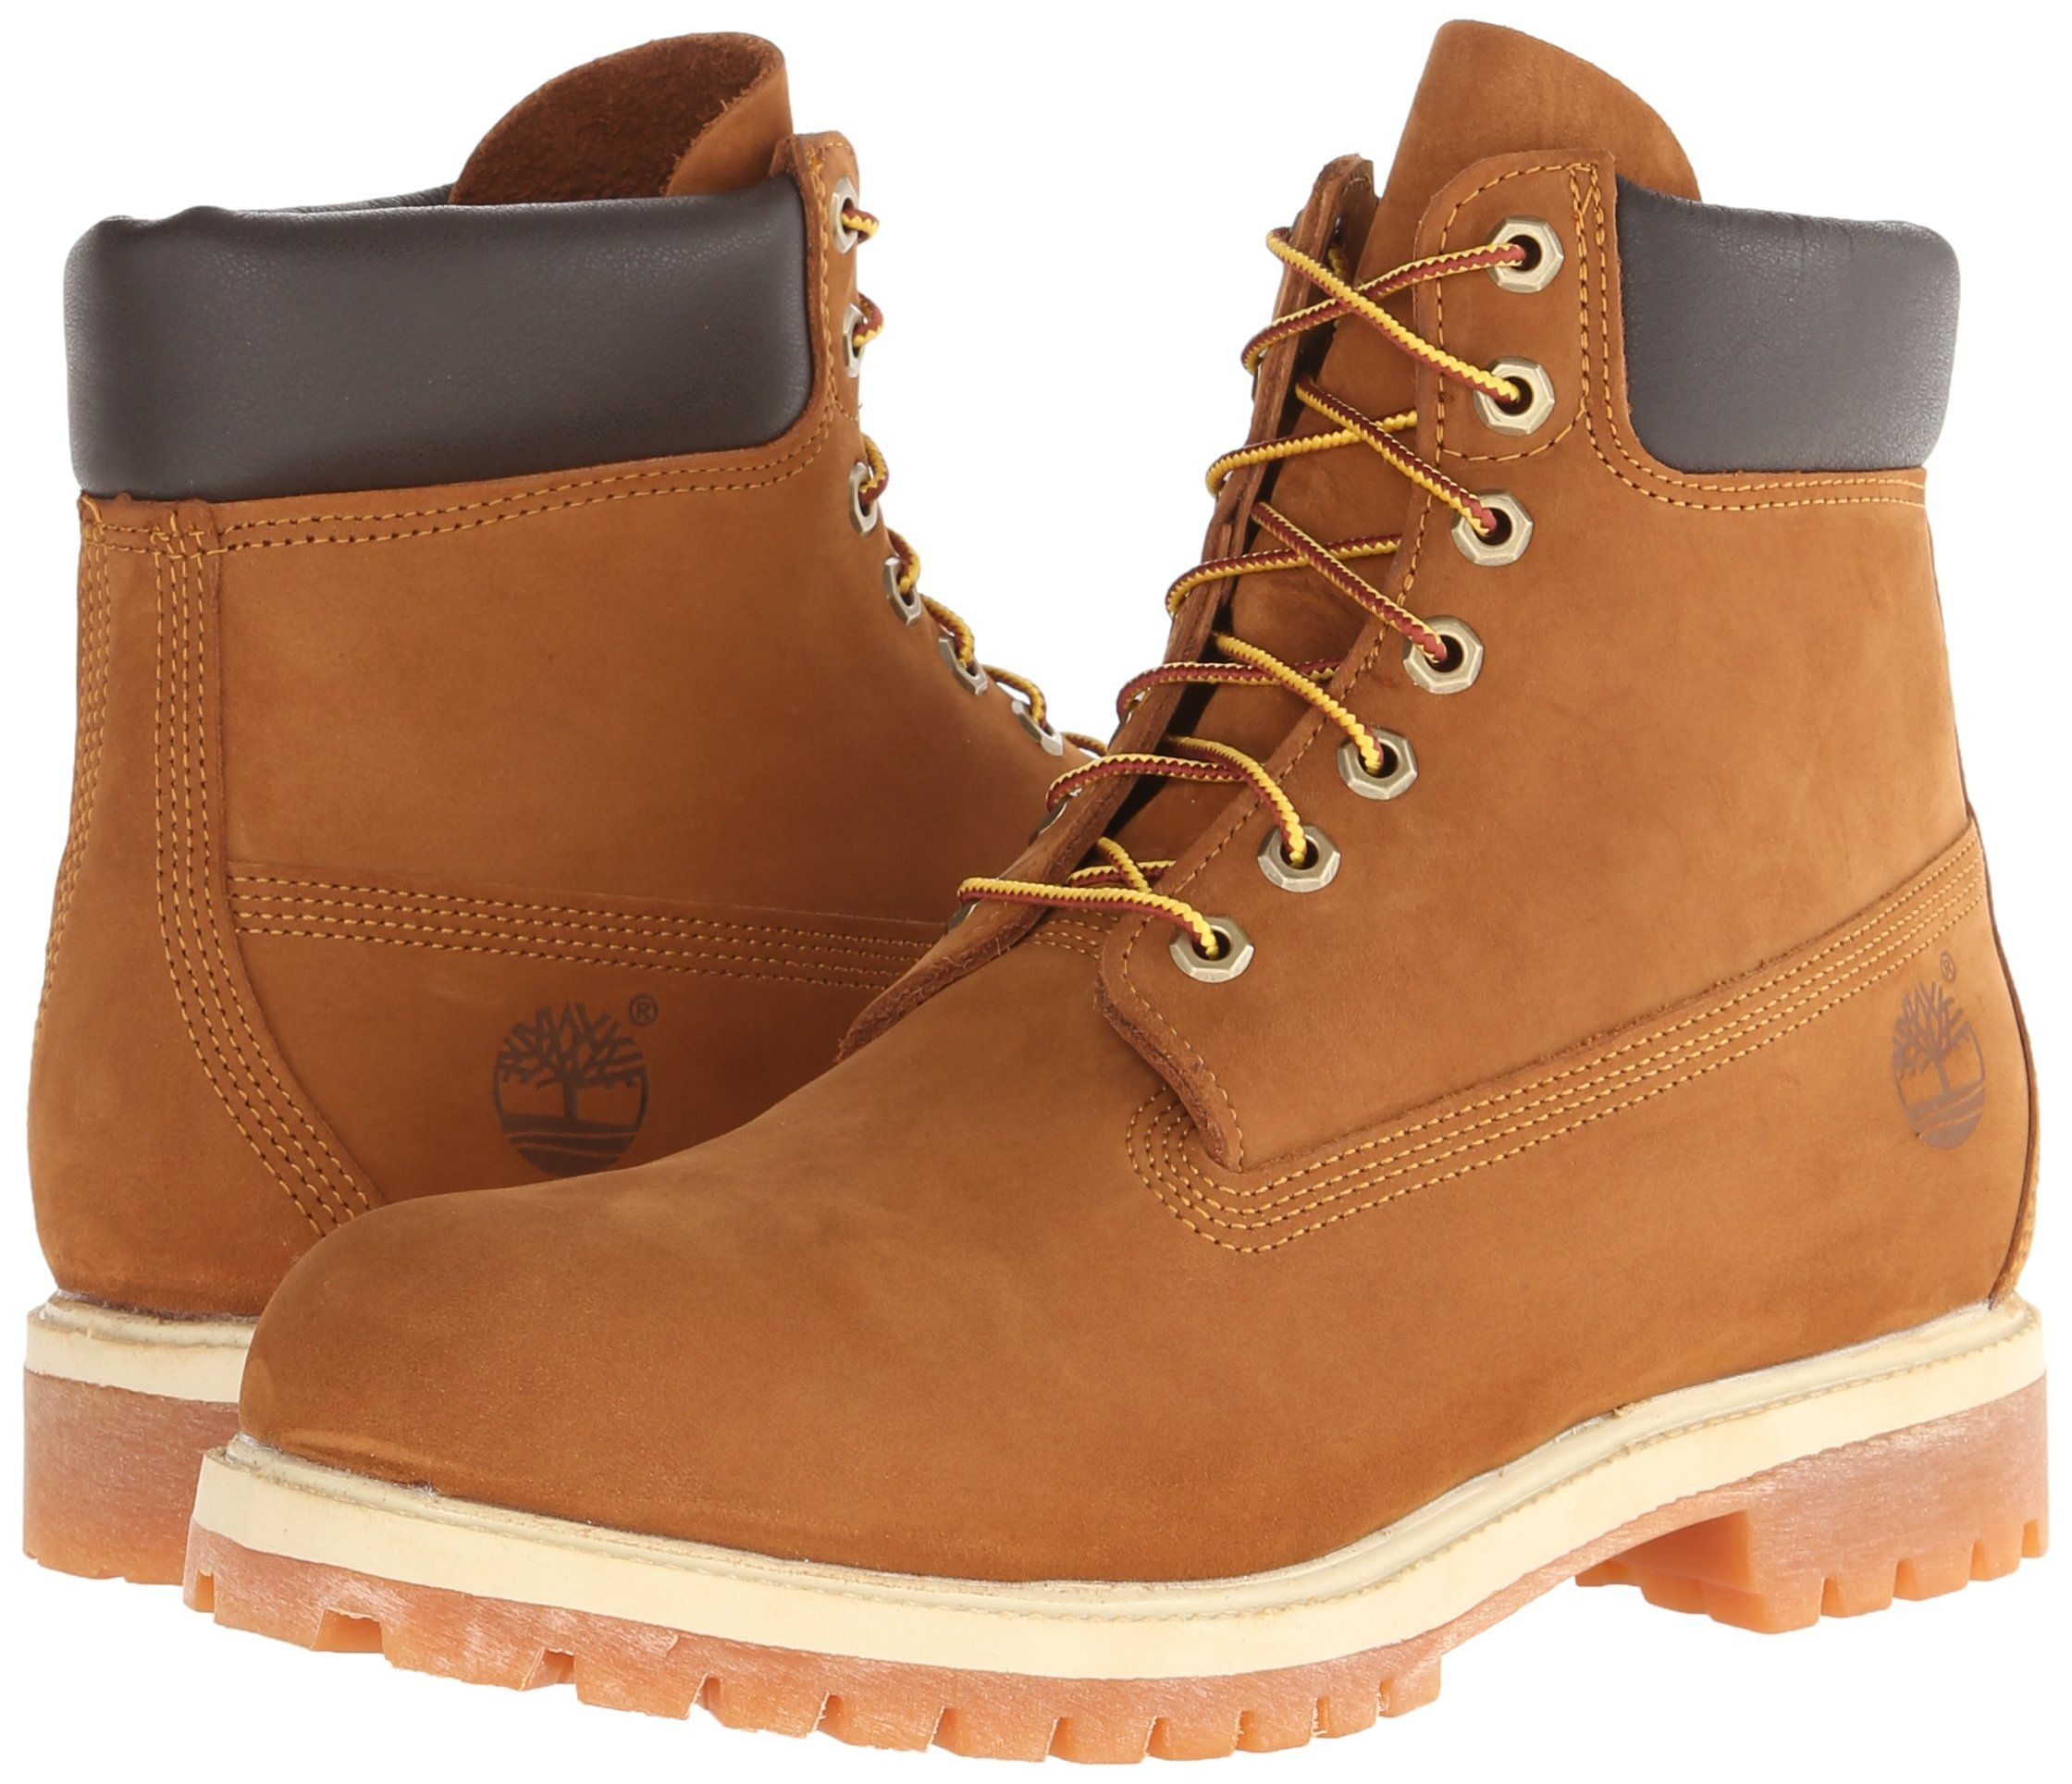 Timberland Mens 6 inch Premium Waterproof Boot Rust nubuck 9.5 D Medium